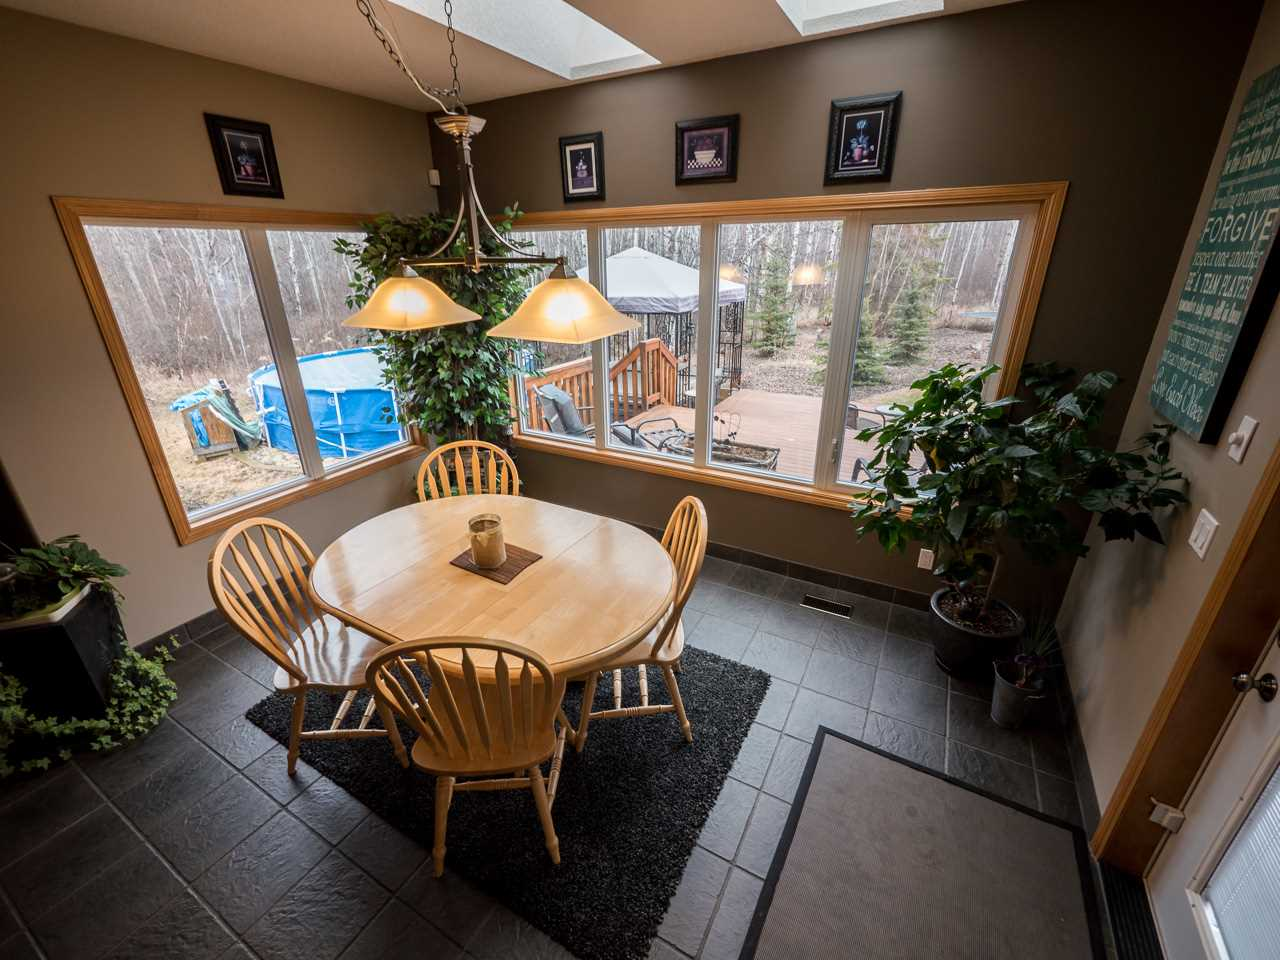 Photo 7: 51543 RR 220: Rural Strathcona County House for sale : MLS(r) # E4072257